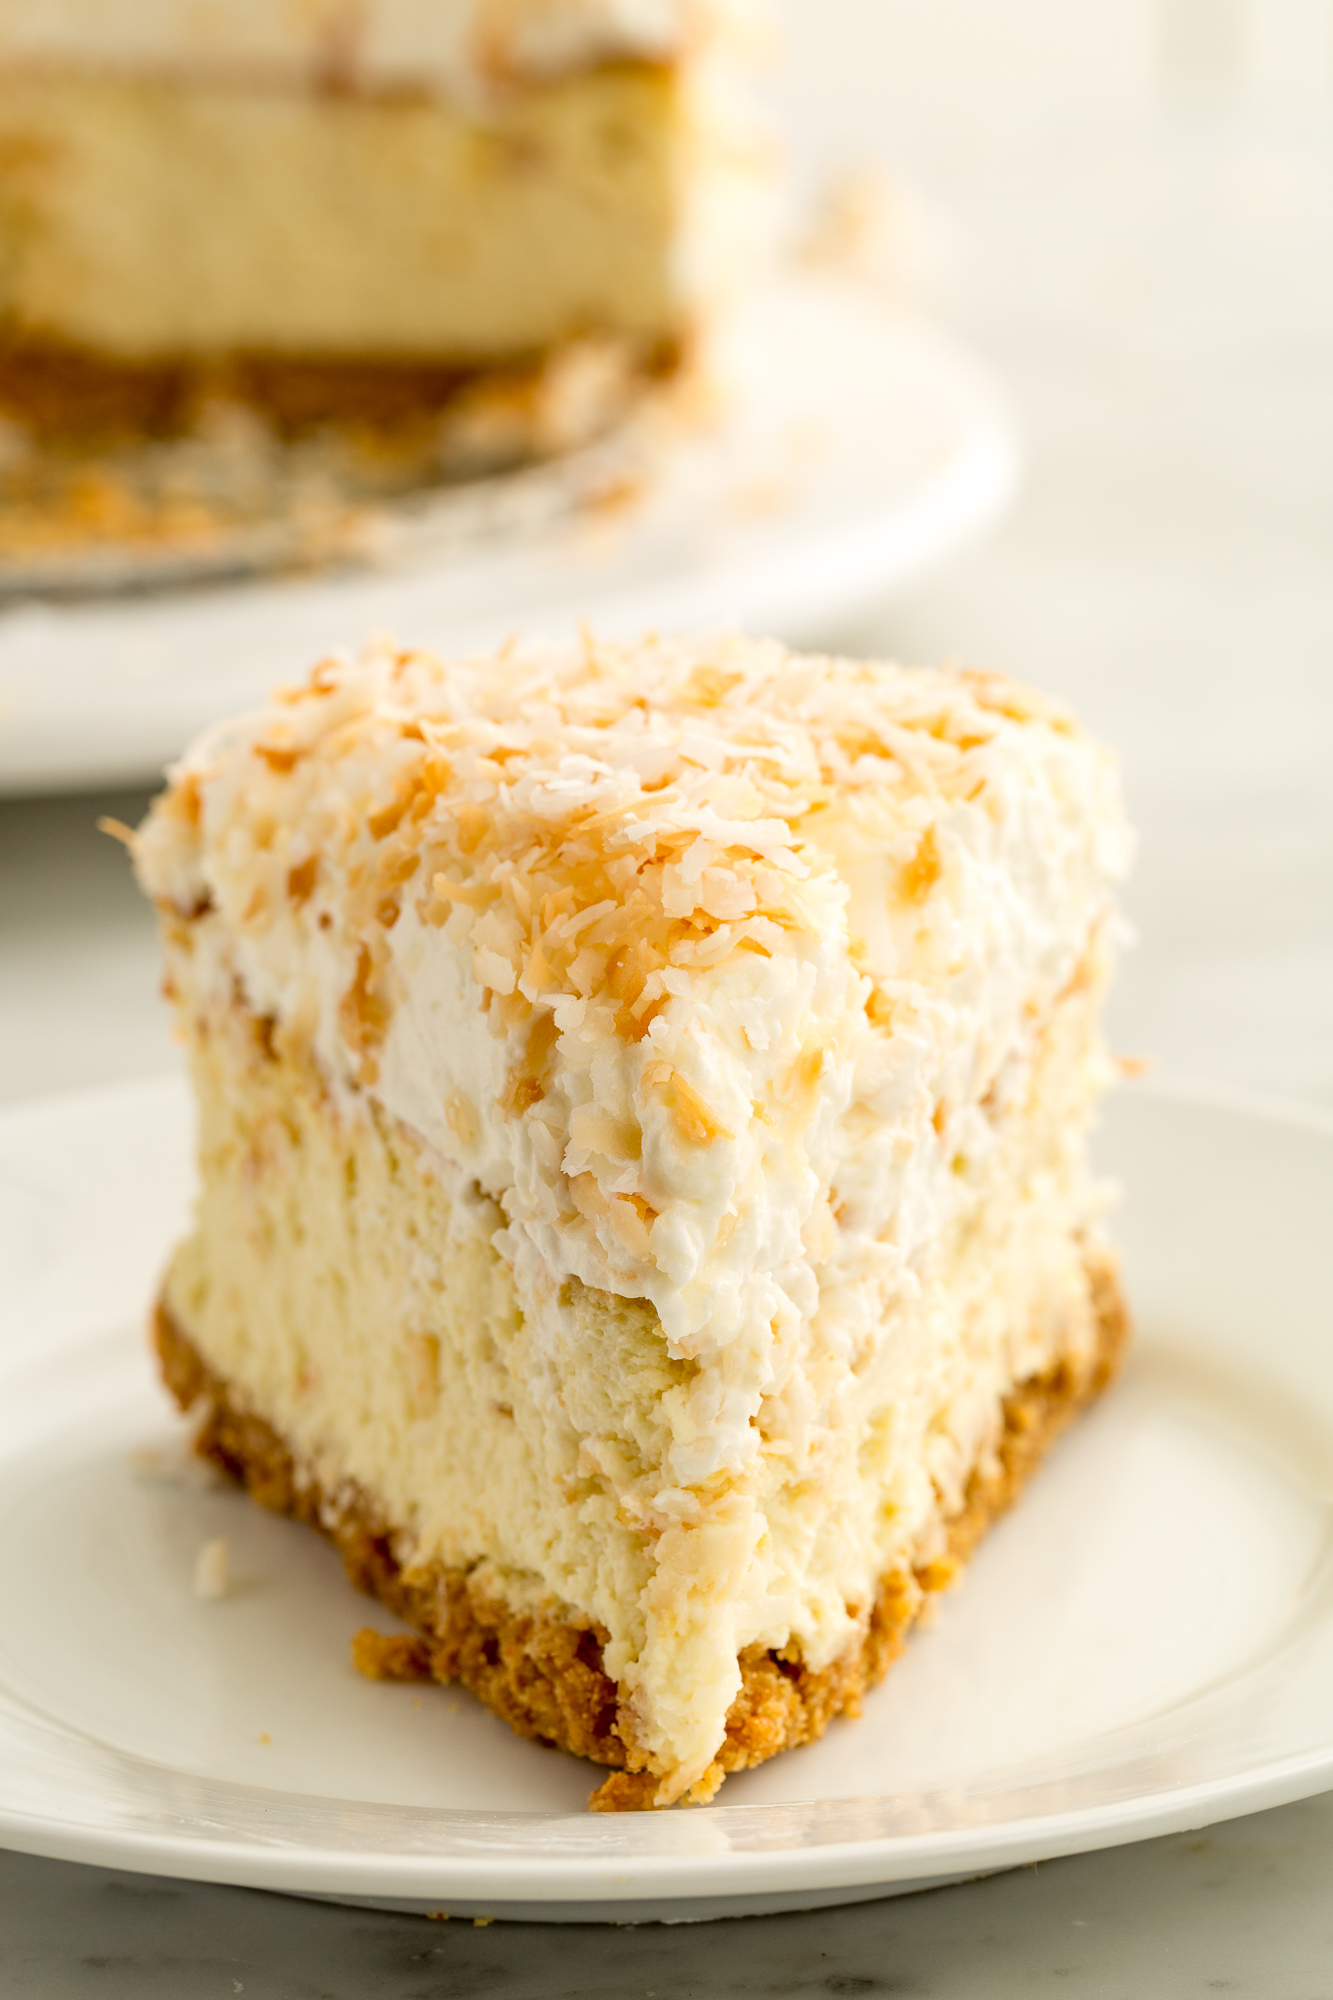 coconut cheesecake delish desserts dessert summer recipes treats easy recipe cakes easter toasted sweet ll winter party food cake goals